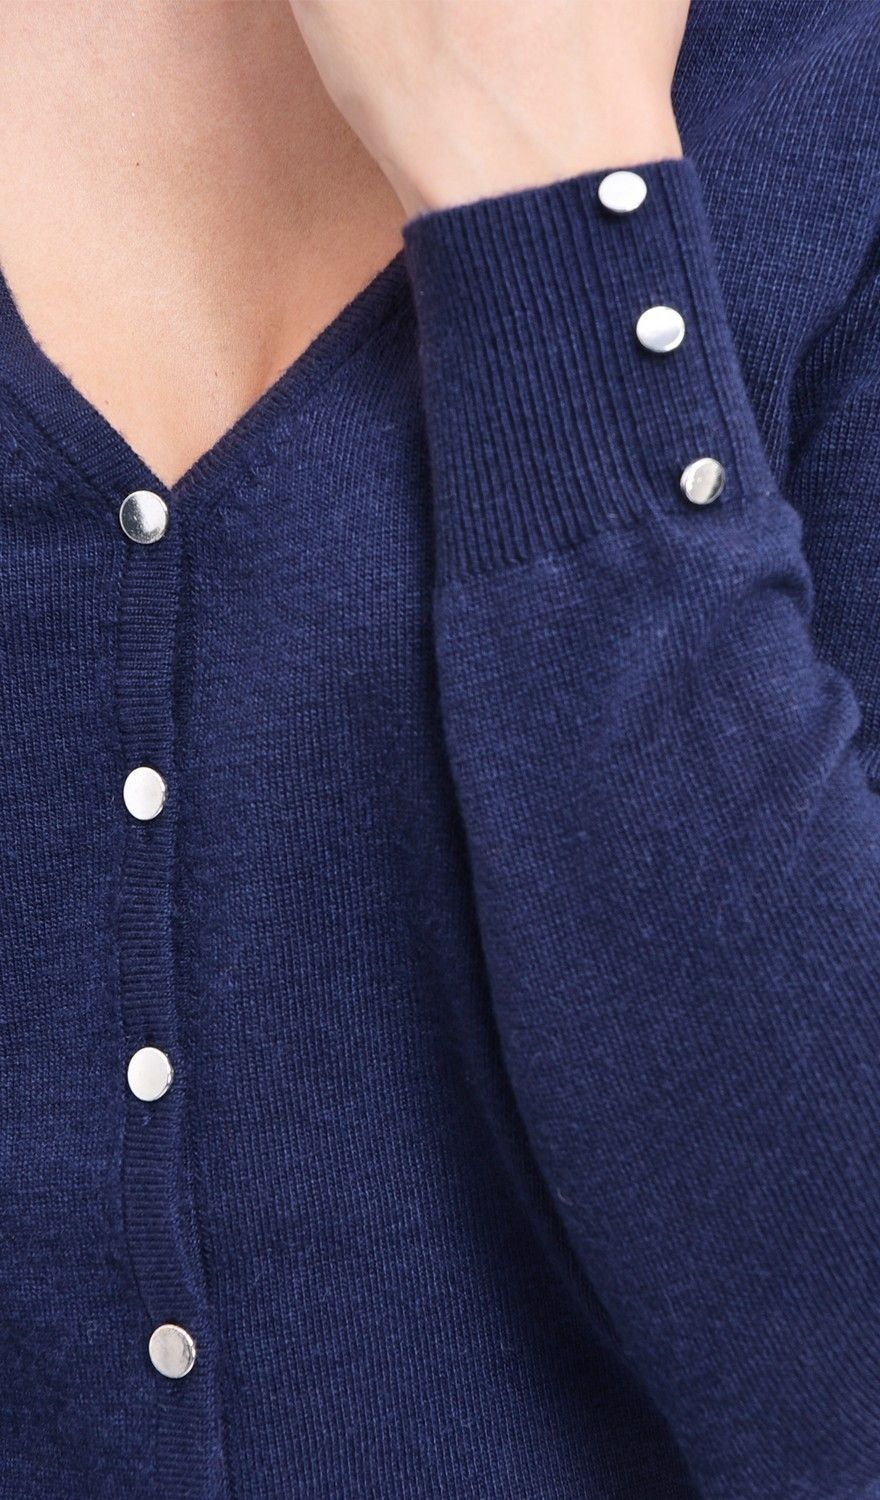 C&JO V-neck Cardigan with Silver Buttons in Navy